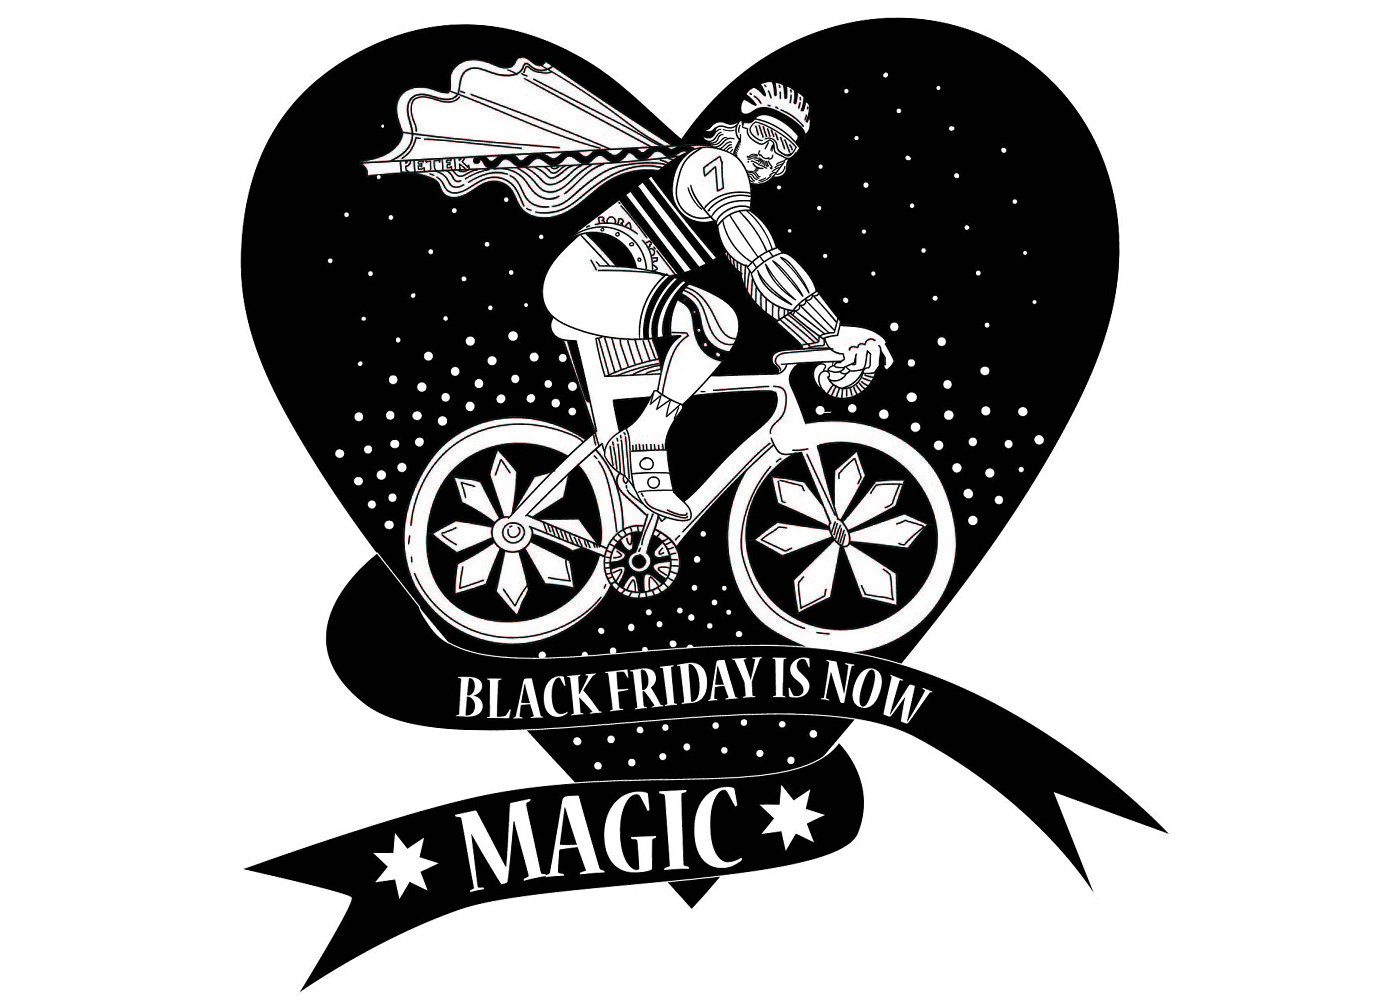 Black friday is now magic - Príklad TEST